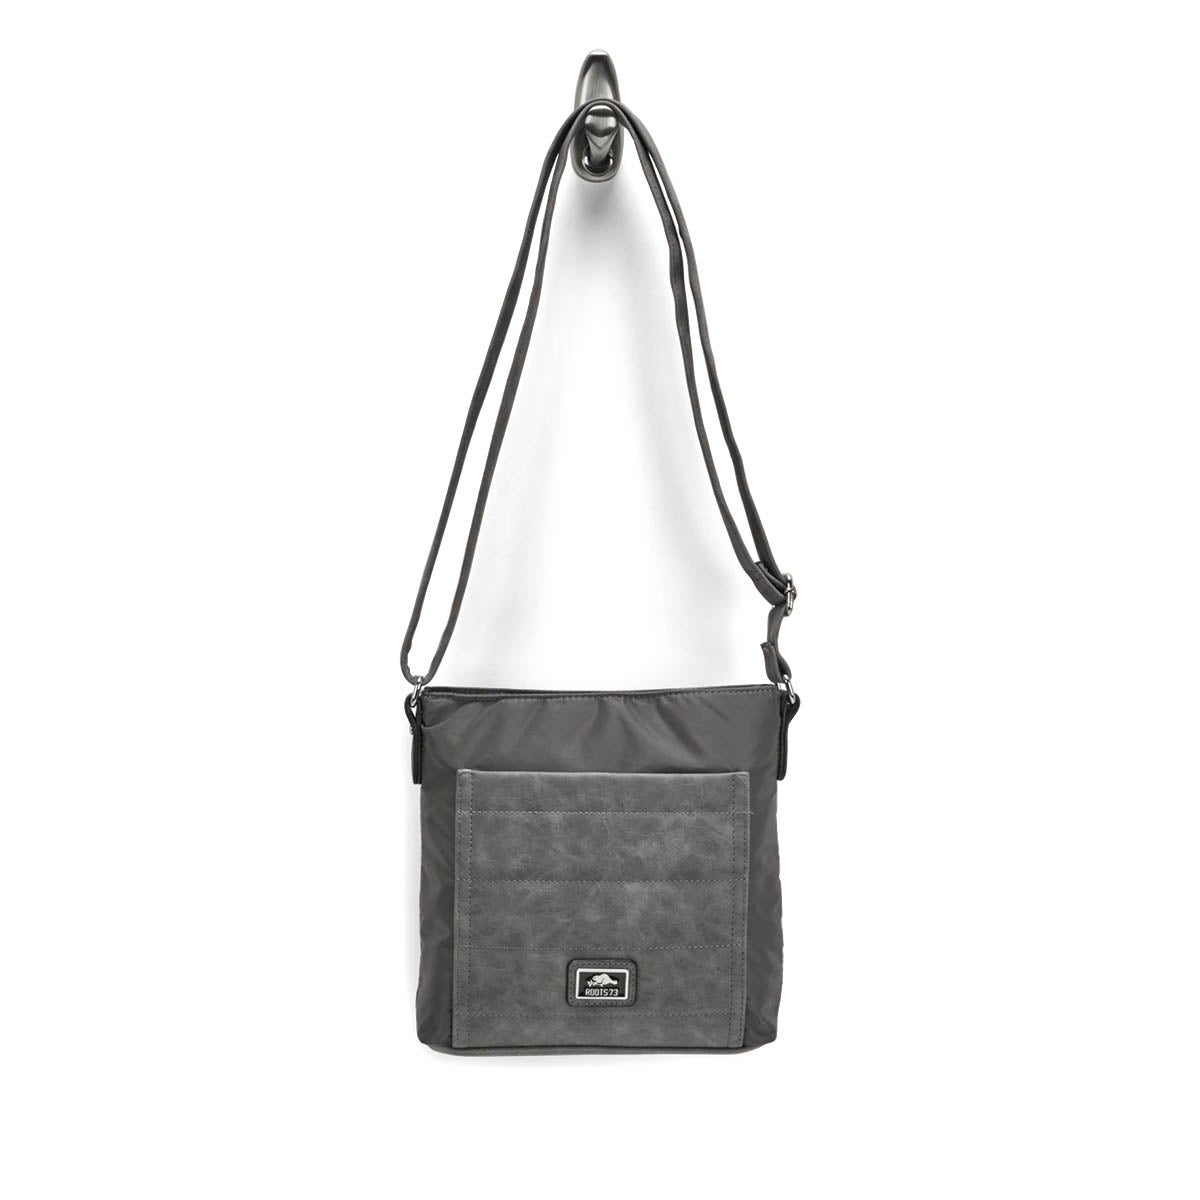 Lds Roots73 gry quilted crossbody bag